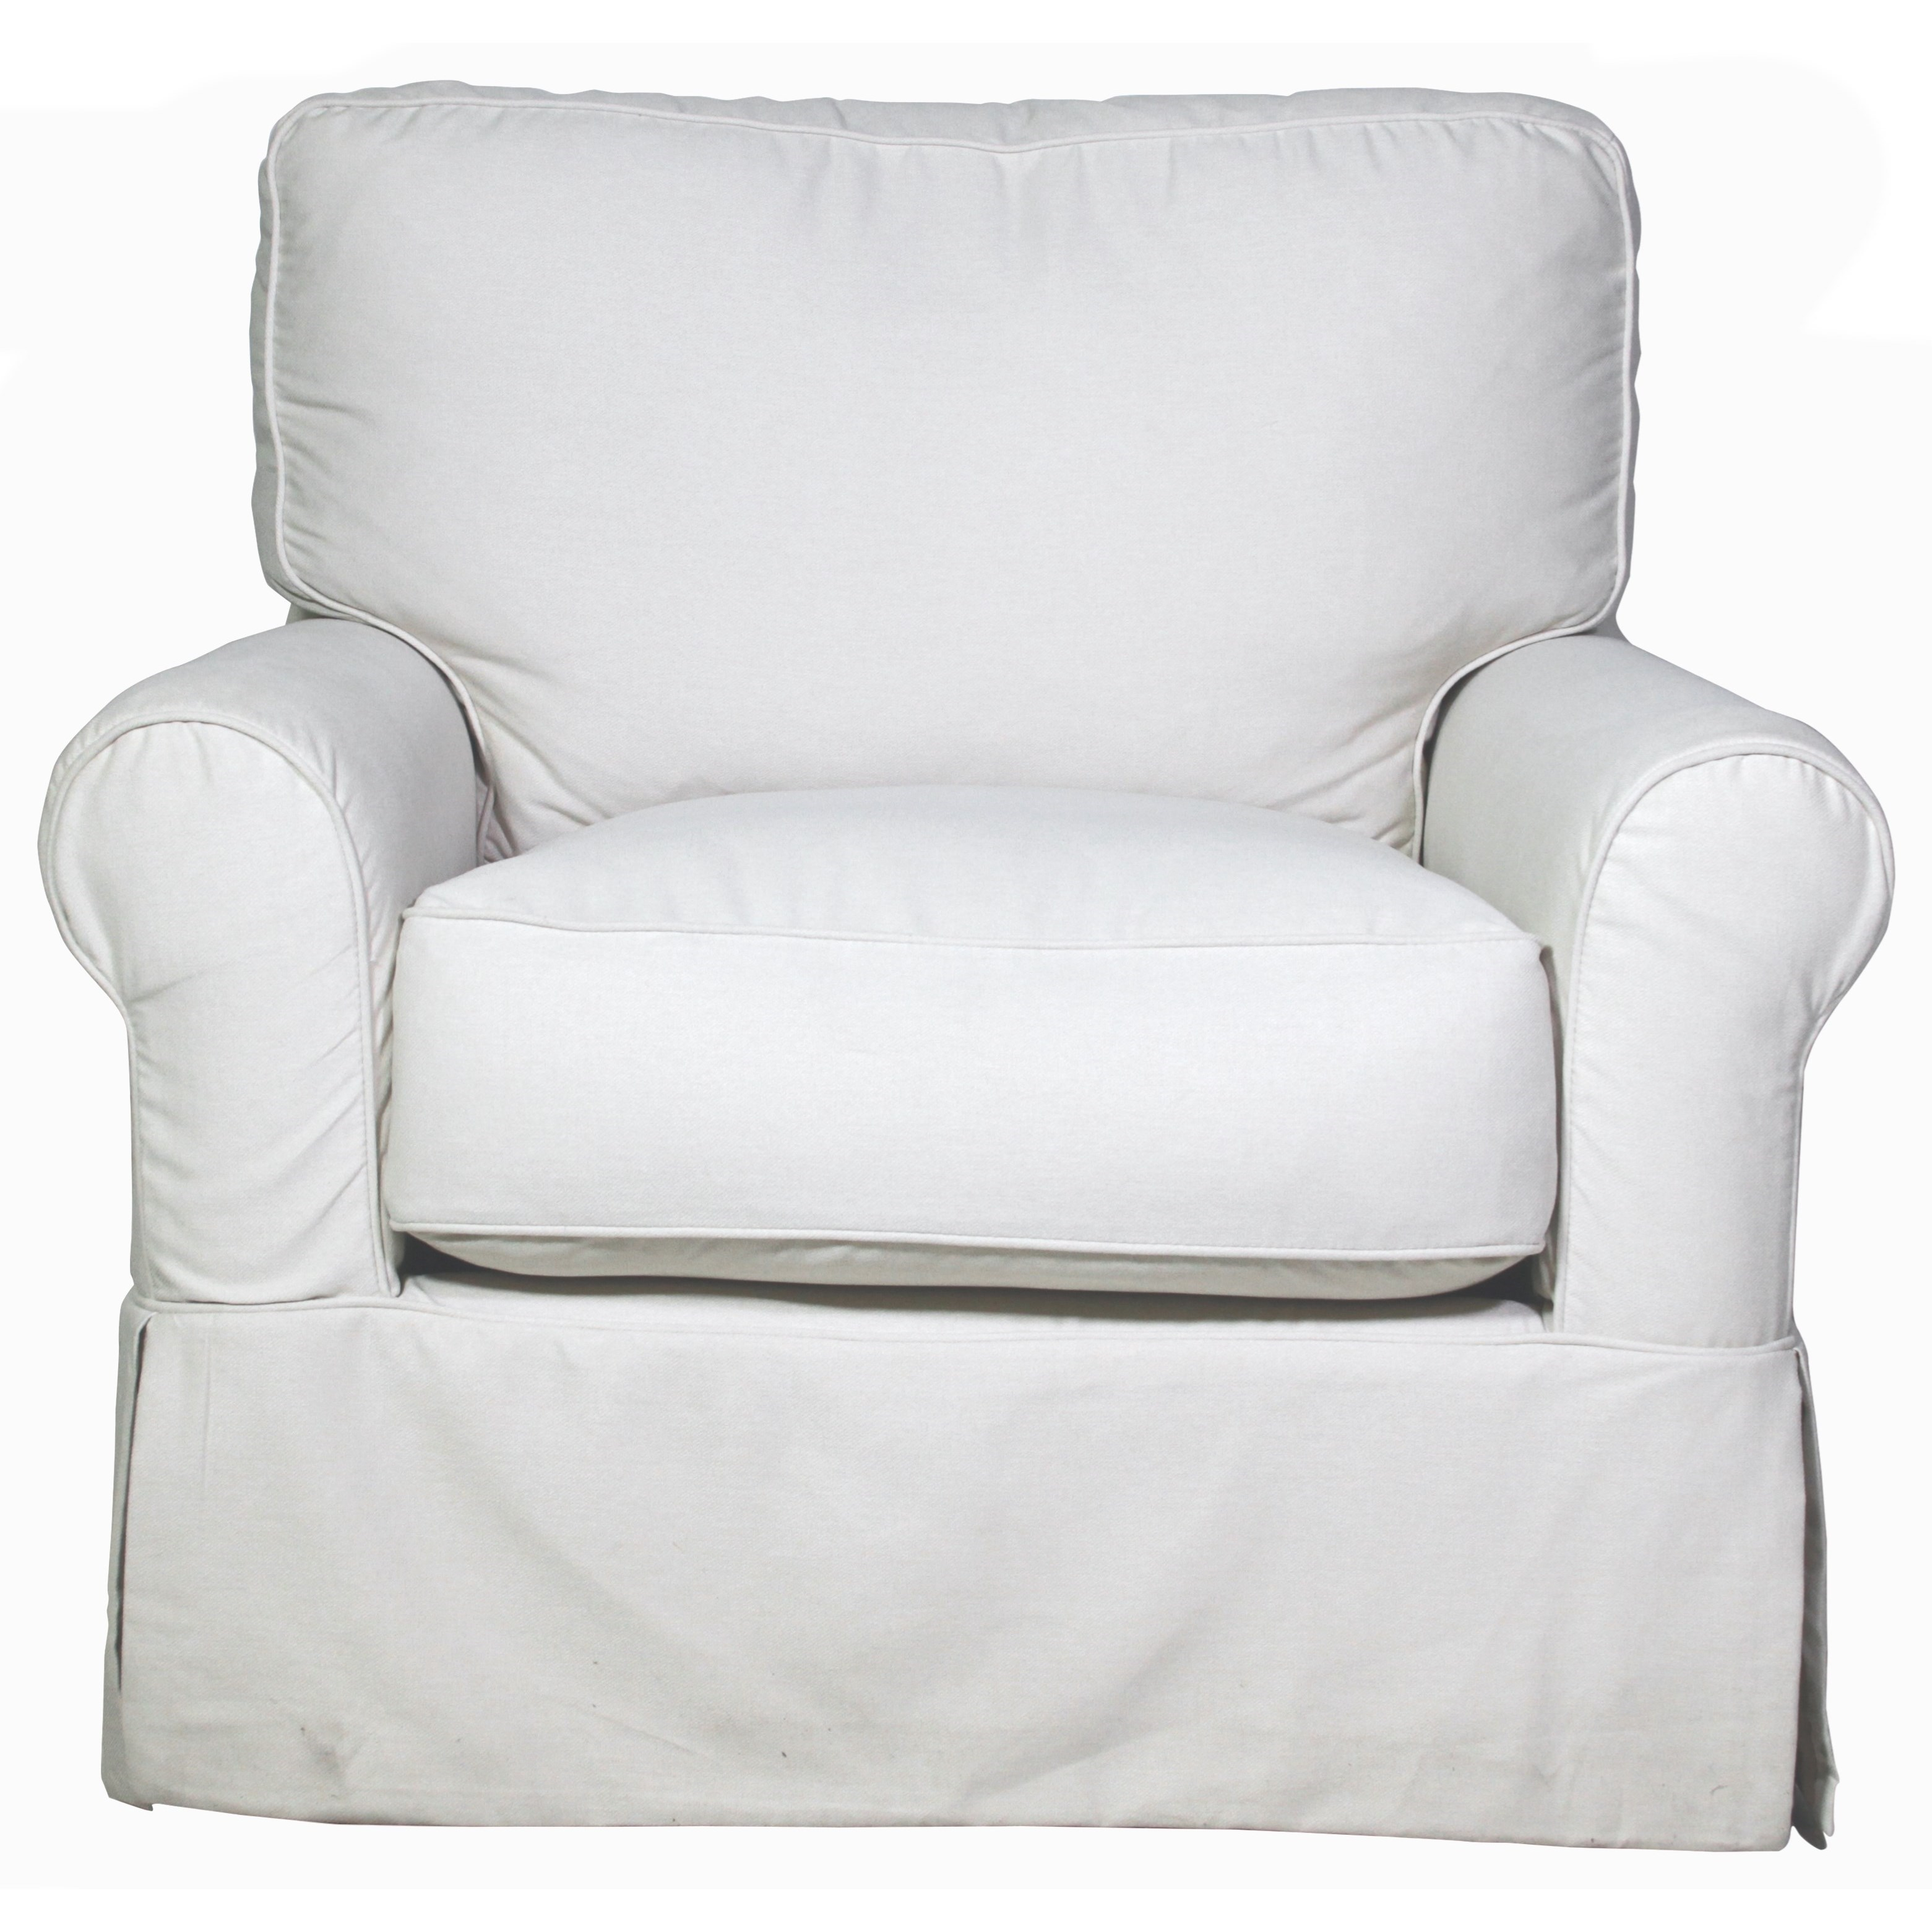 Synergy Home Furnishings Fleming Swivel Chair - Item Number: 1313-93 3916-82